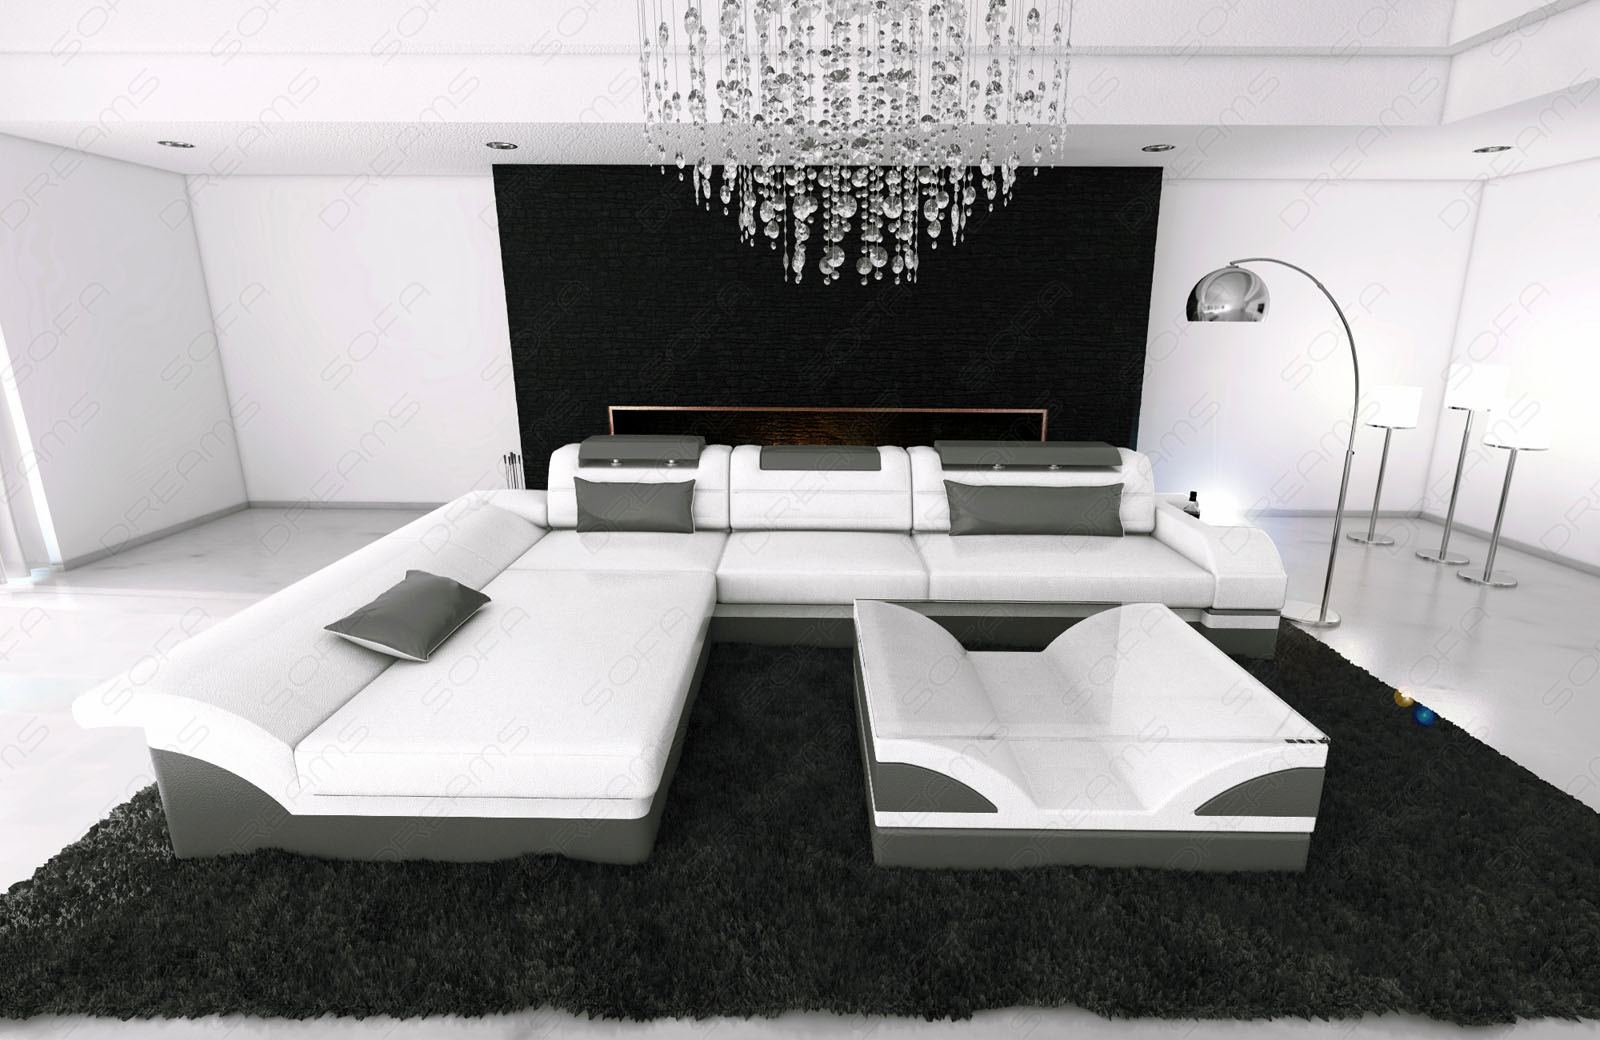 ledercouch design ecksofa monza l form ottomane weiss grau mit led beleuchtung ebay. Black Bedroom Furniture Sets. Home Design Ideas